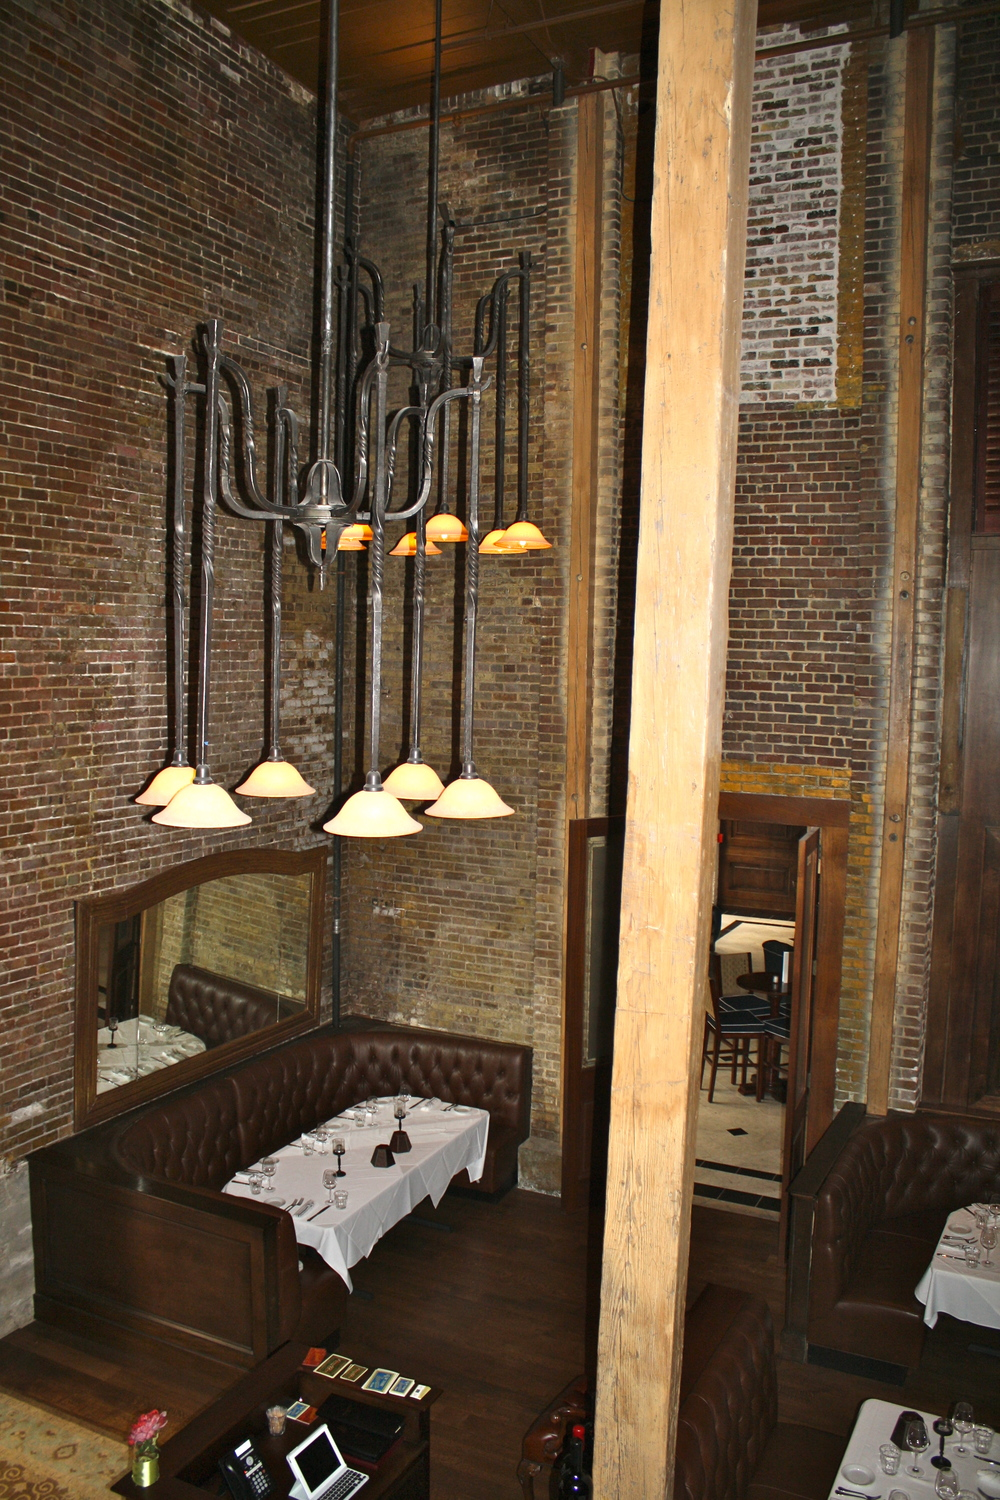 Lighting fixtures designed and forged by Robert Thomas at Artisans of the Anvil Inc.